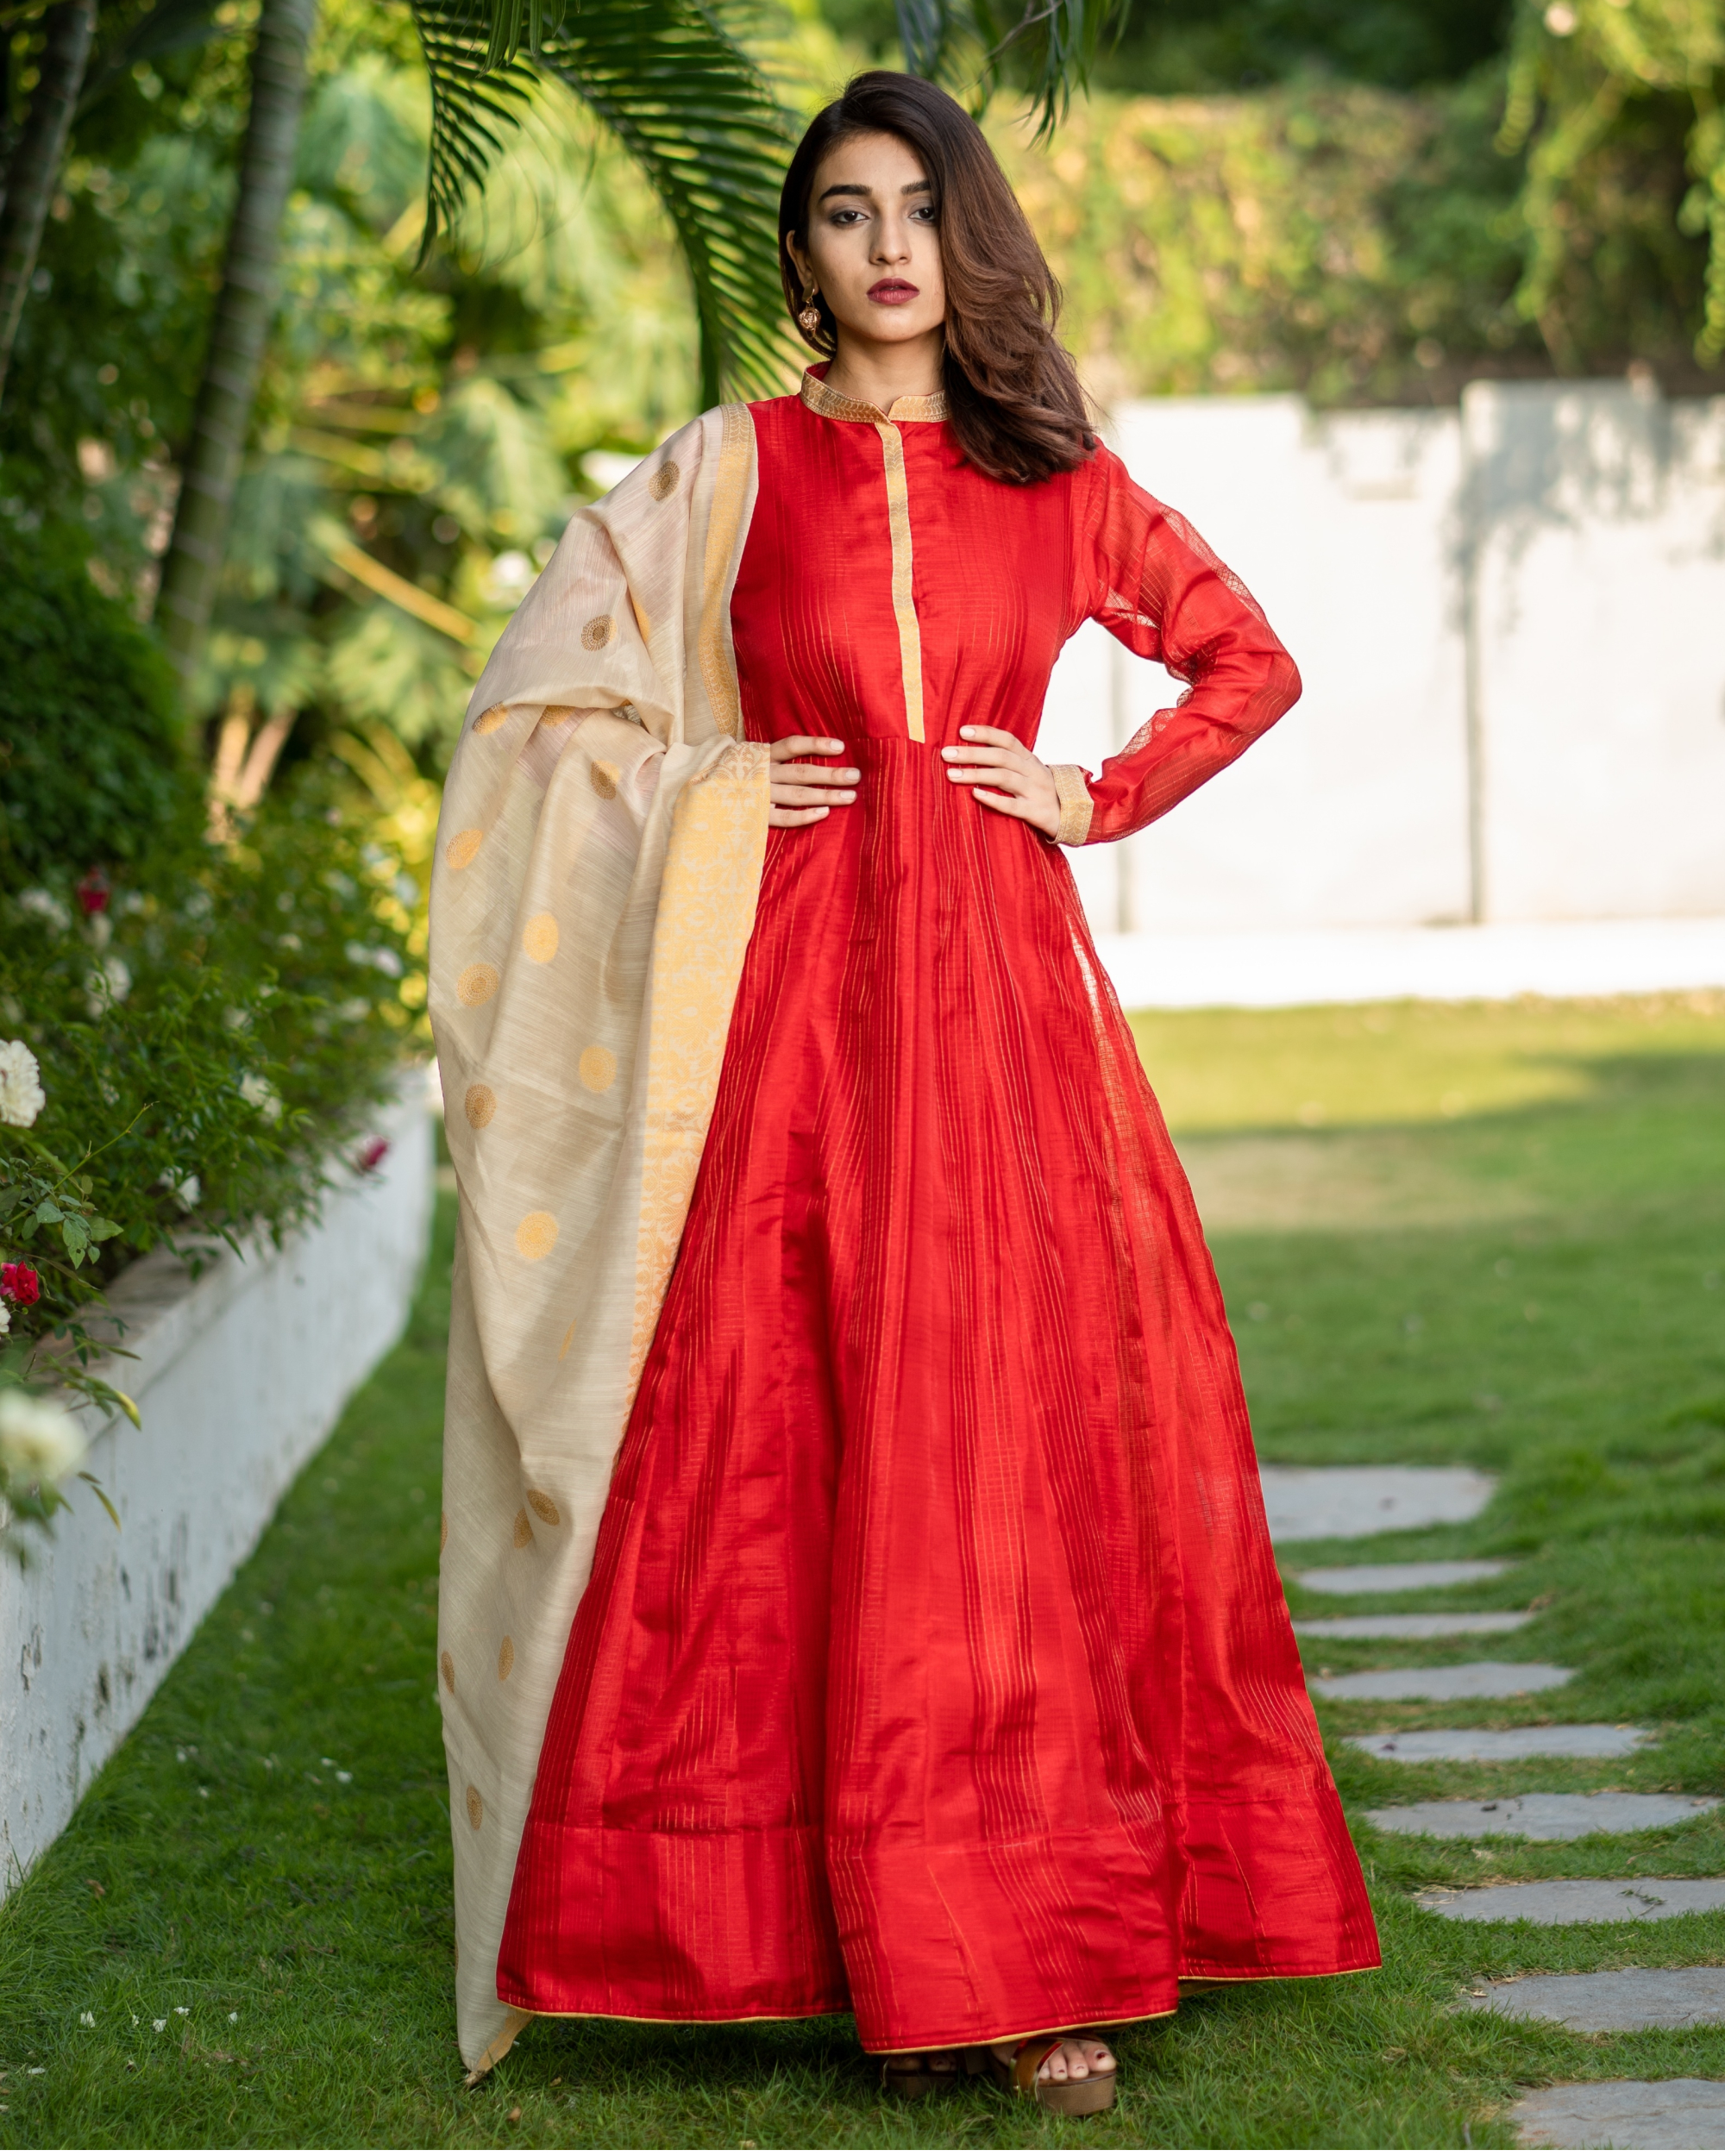 Red Chanderi Cotton Anarkali with Golden Woven Dupatta - Set of Two